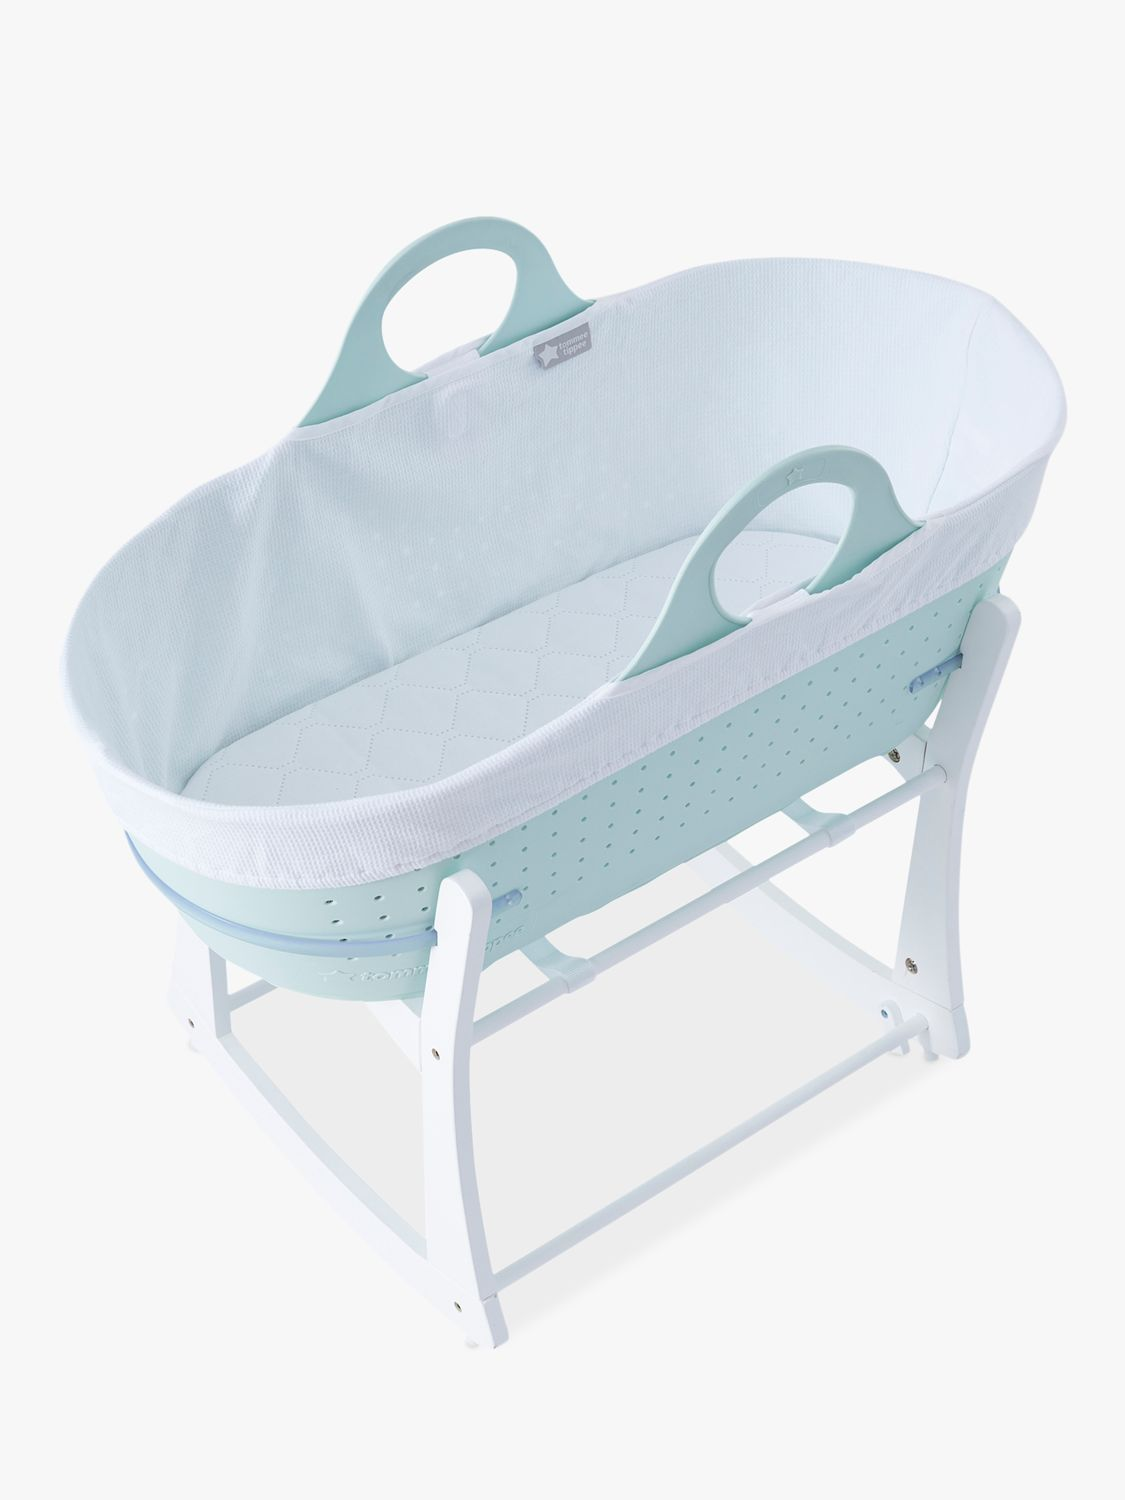 Tommee Tippee Tommee Tippee Sleepee Baby Moses Basket and Rocking Stand, Mint